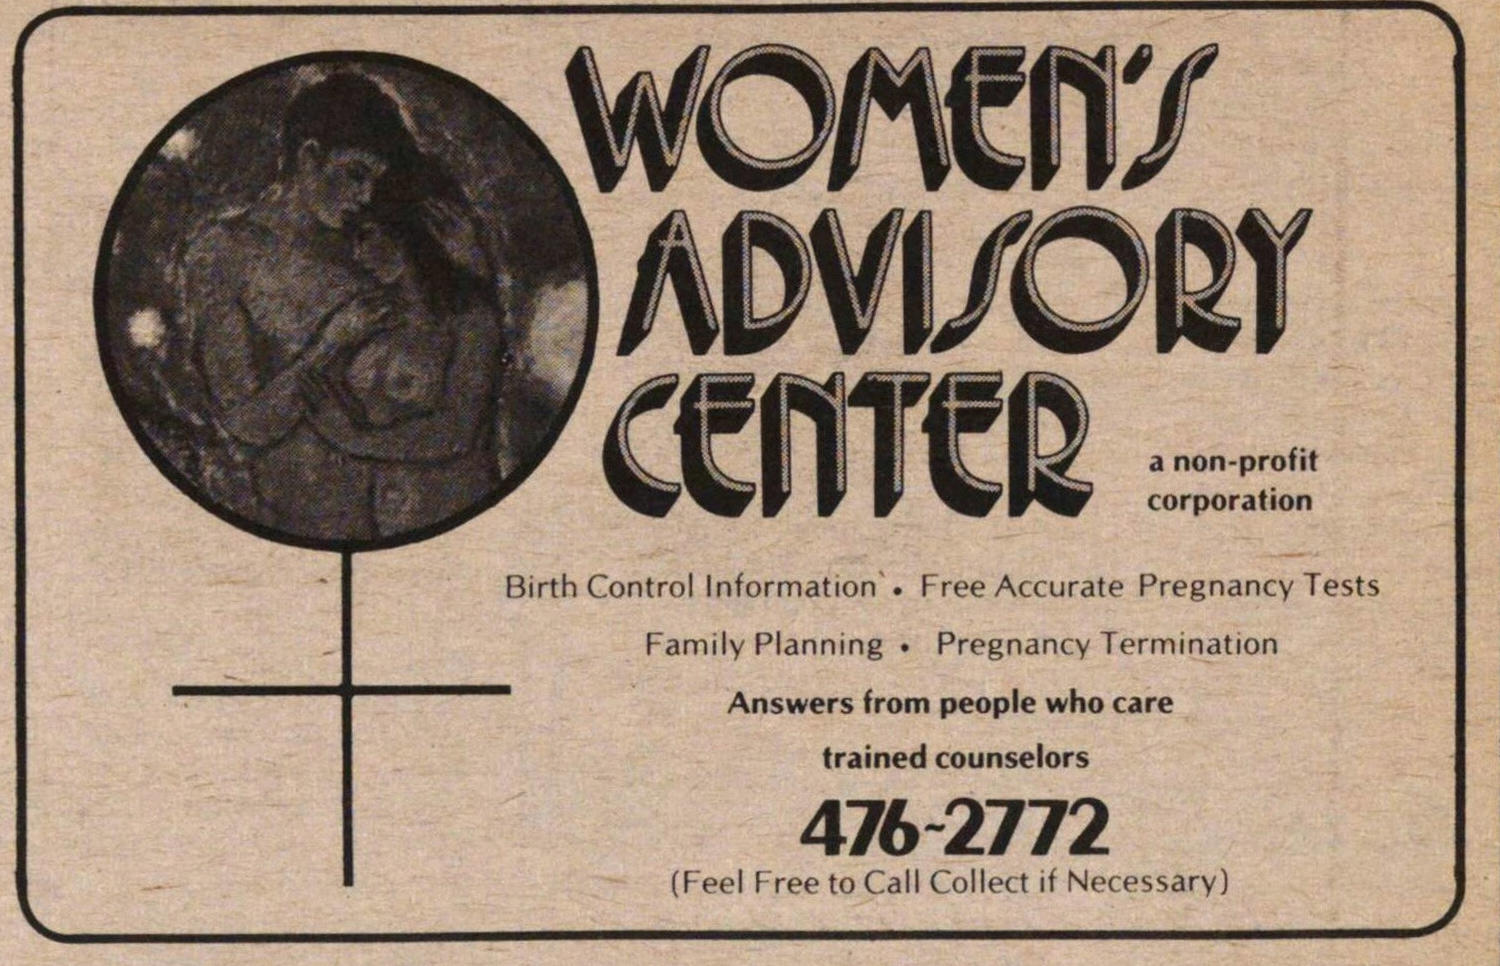 m Birth Control Information'. Free Accur... image